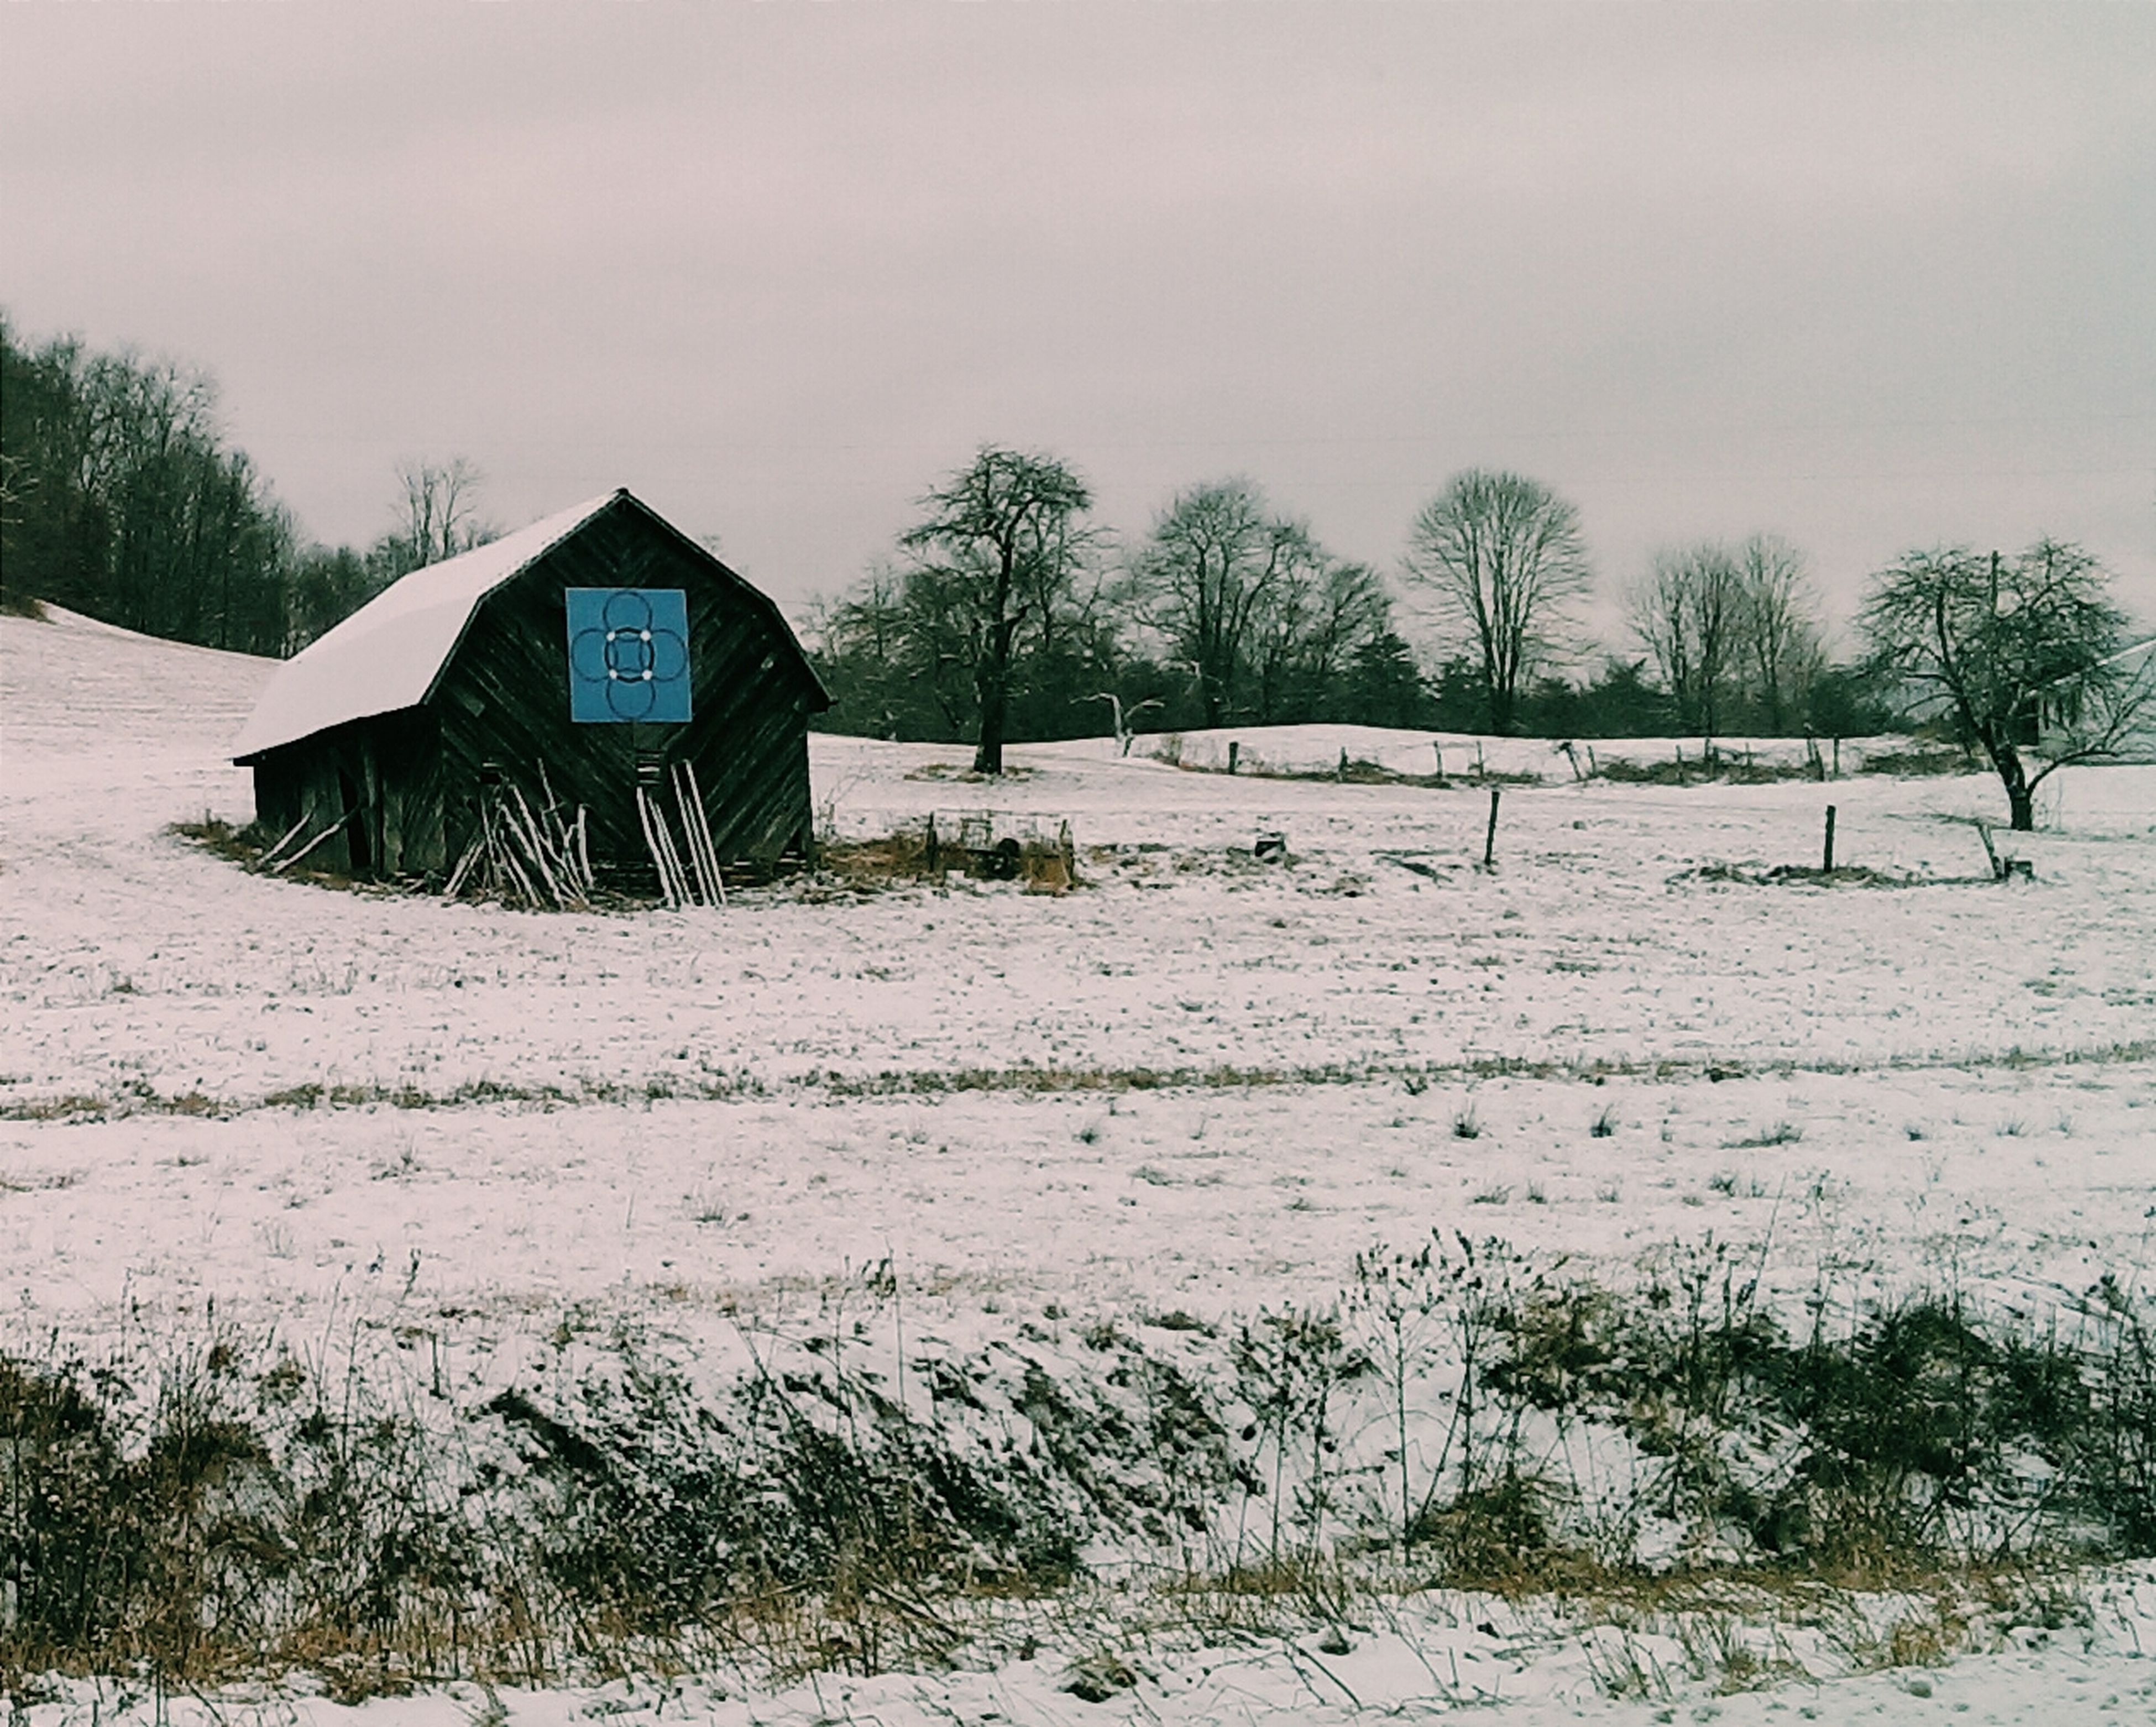 architecture, built structure, building exterior, house, sky, tree, field, snow, landscape, abandoned, winter, weather, cold temperature, nature, day, outdoors, tranquil scene, tranquility, no people, residential structure